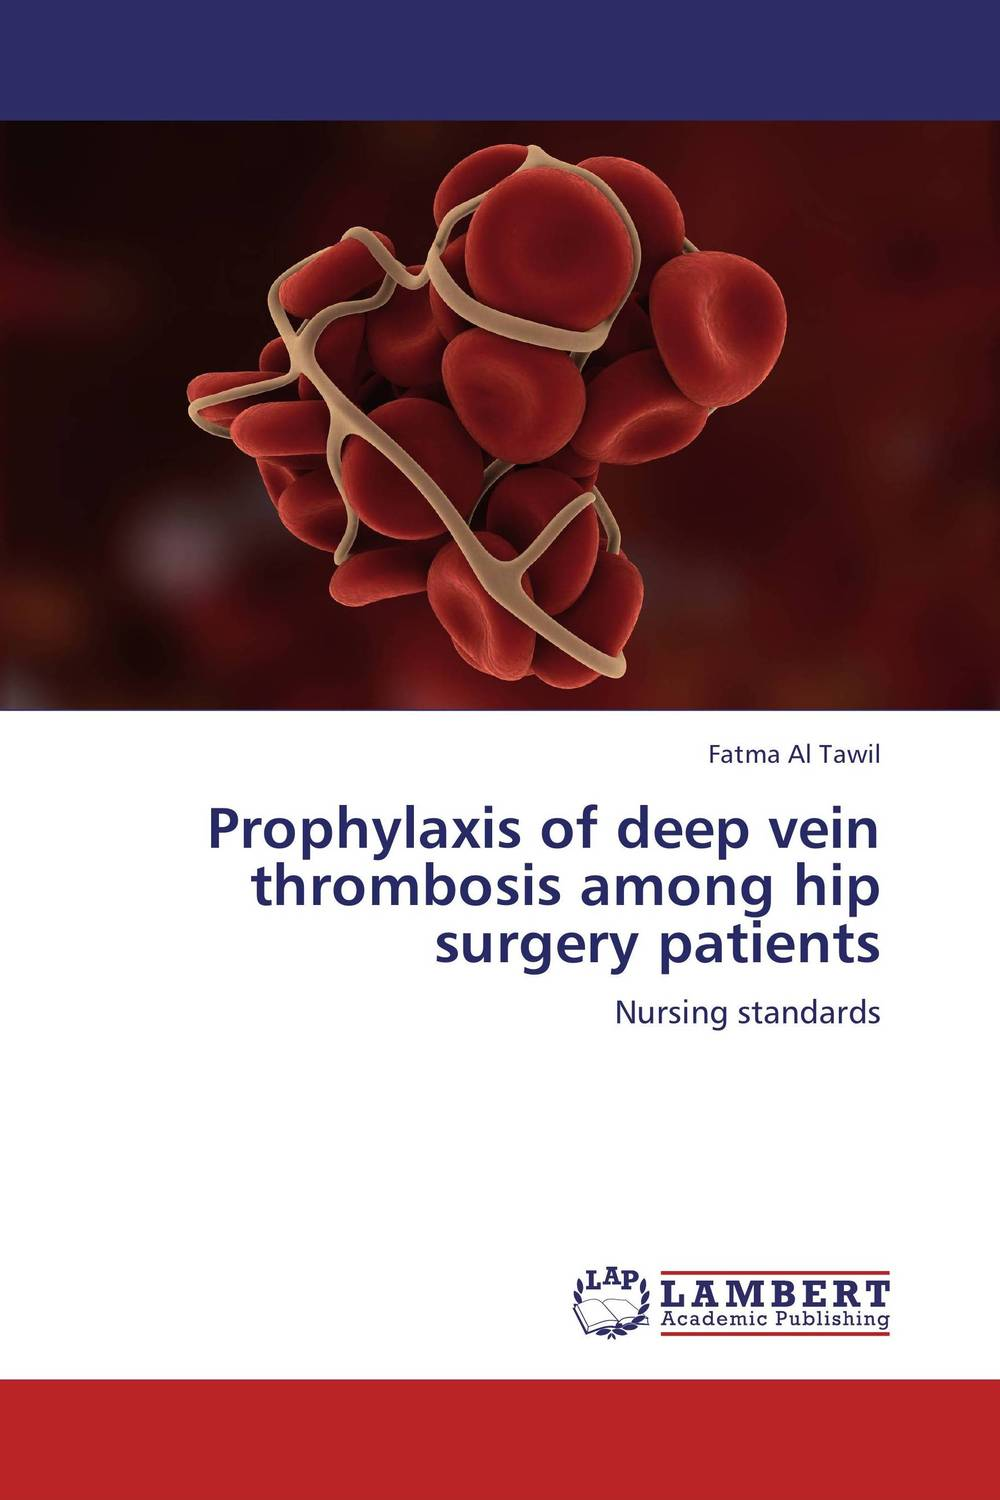 Prophylaxis of deep vein thrombosis among hip surgery patients analgesia in patients with hip fracture